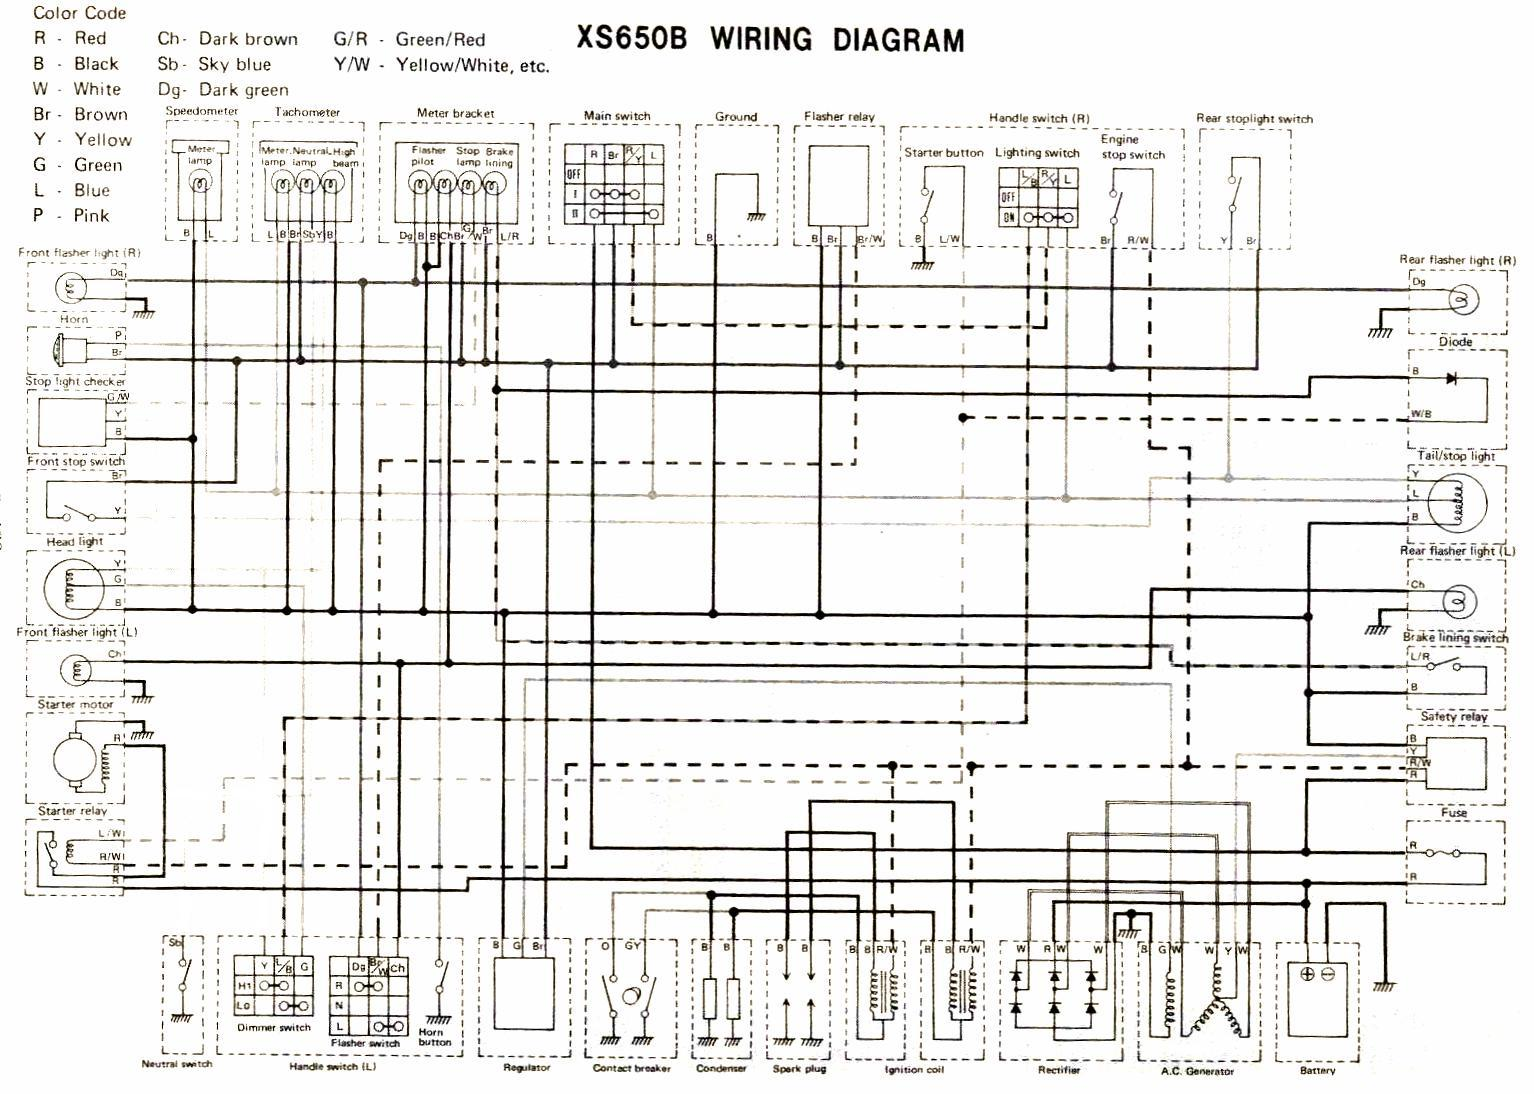 Wiring Diagrams 1981 Kawasaki Diagram 1975 Xs650b